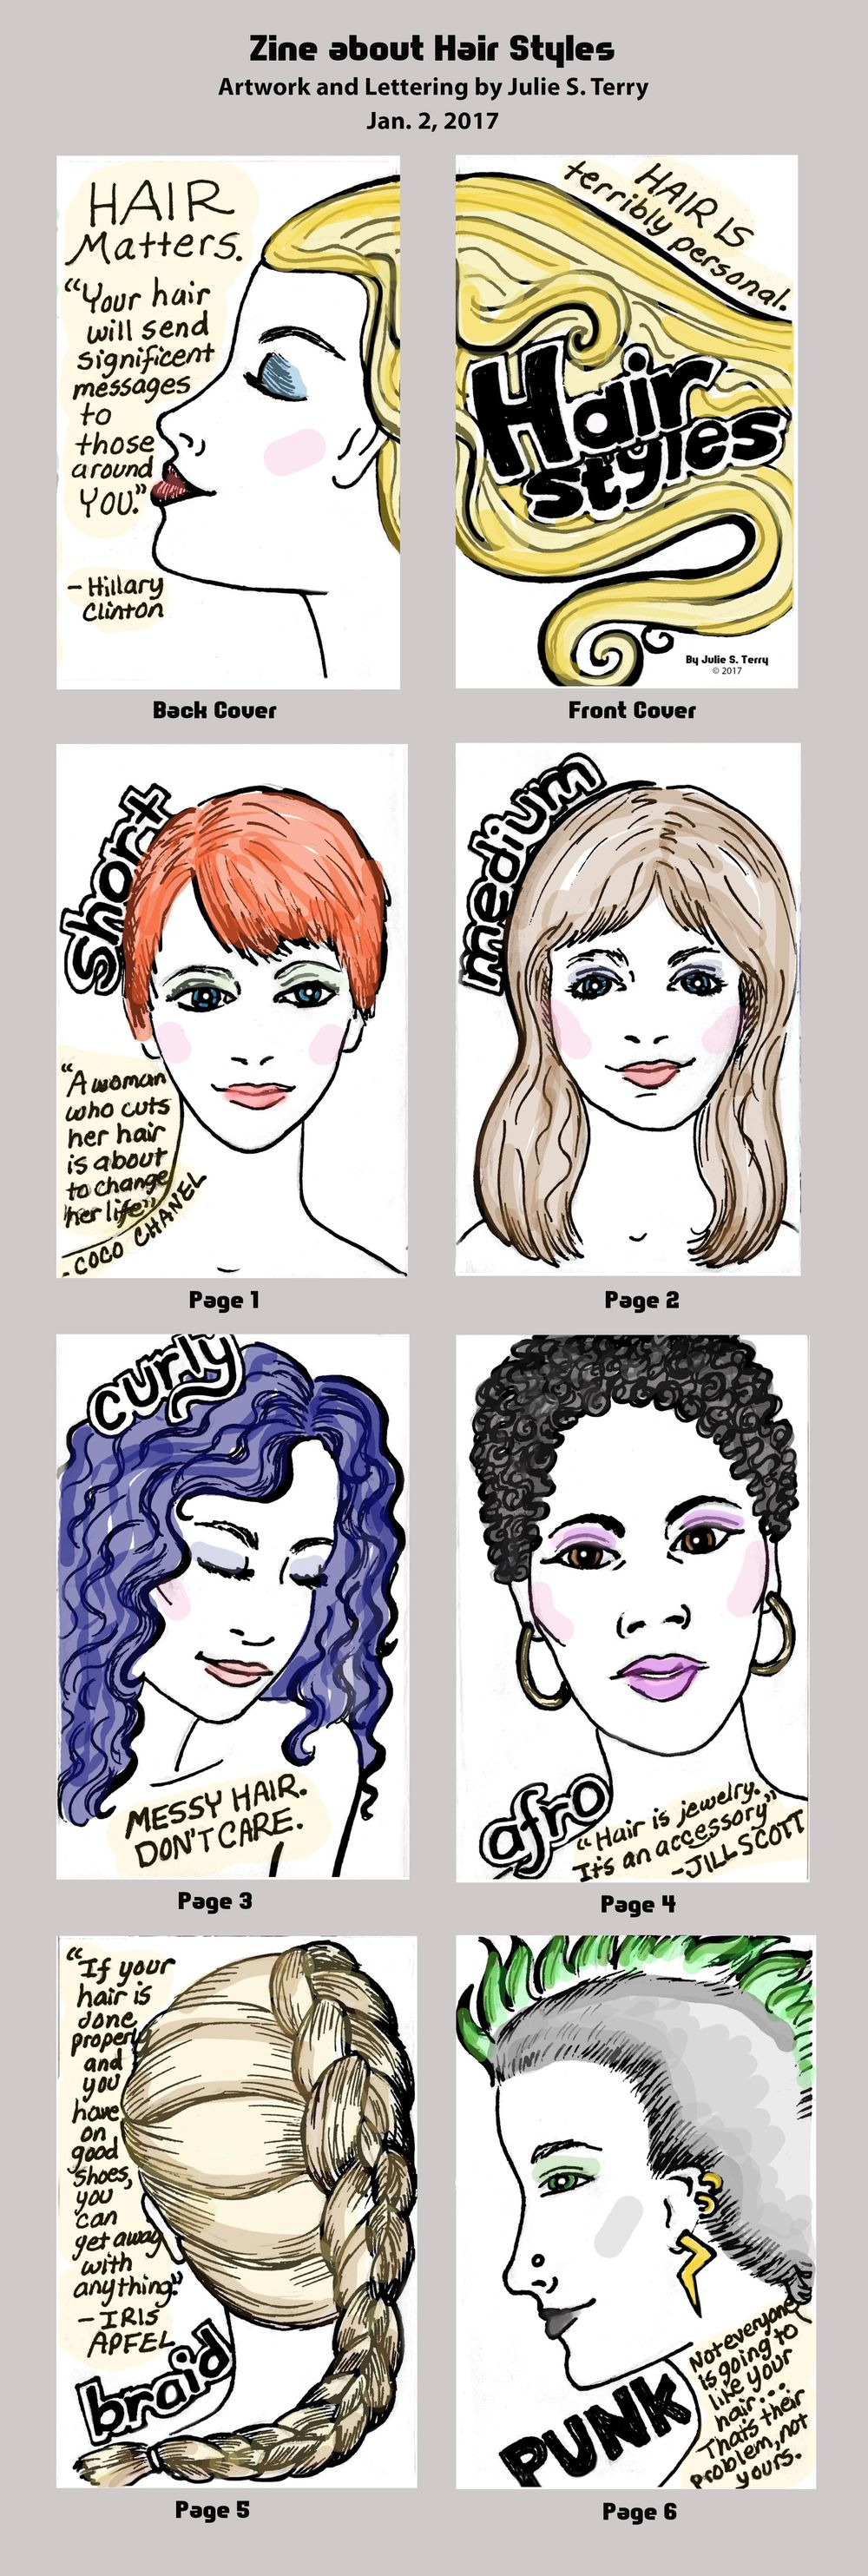 Hair Styles Zine - image 2 - student project